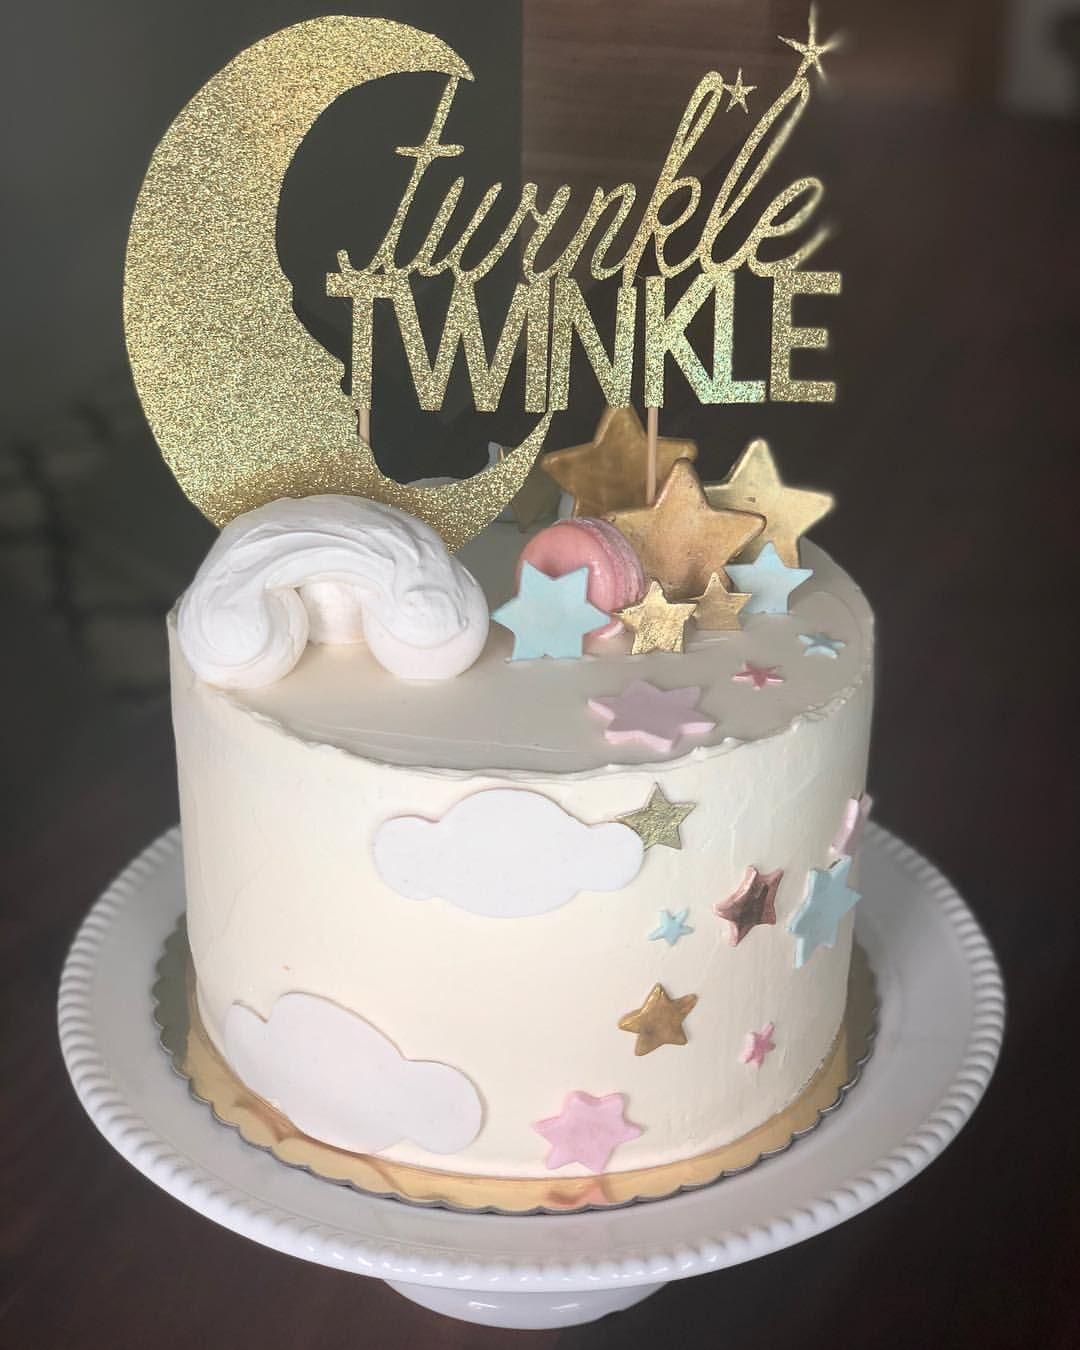 Twinkle Twinkle Little Star Gender Reveal Cake Made With Lots Of Love Vainilla Cake And Vai Baby Reveal Cakes Gender Reveal Cake Star Baby Shower Theme